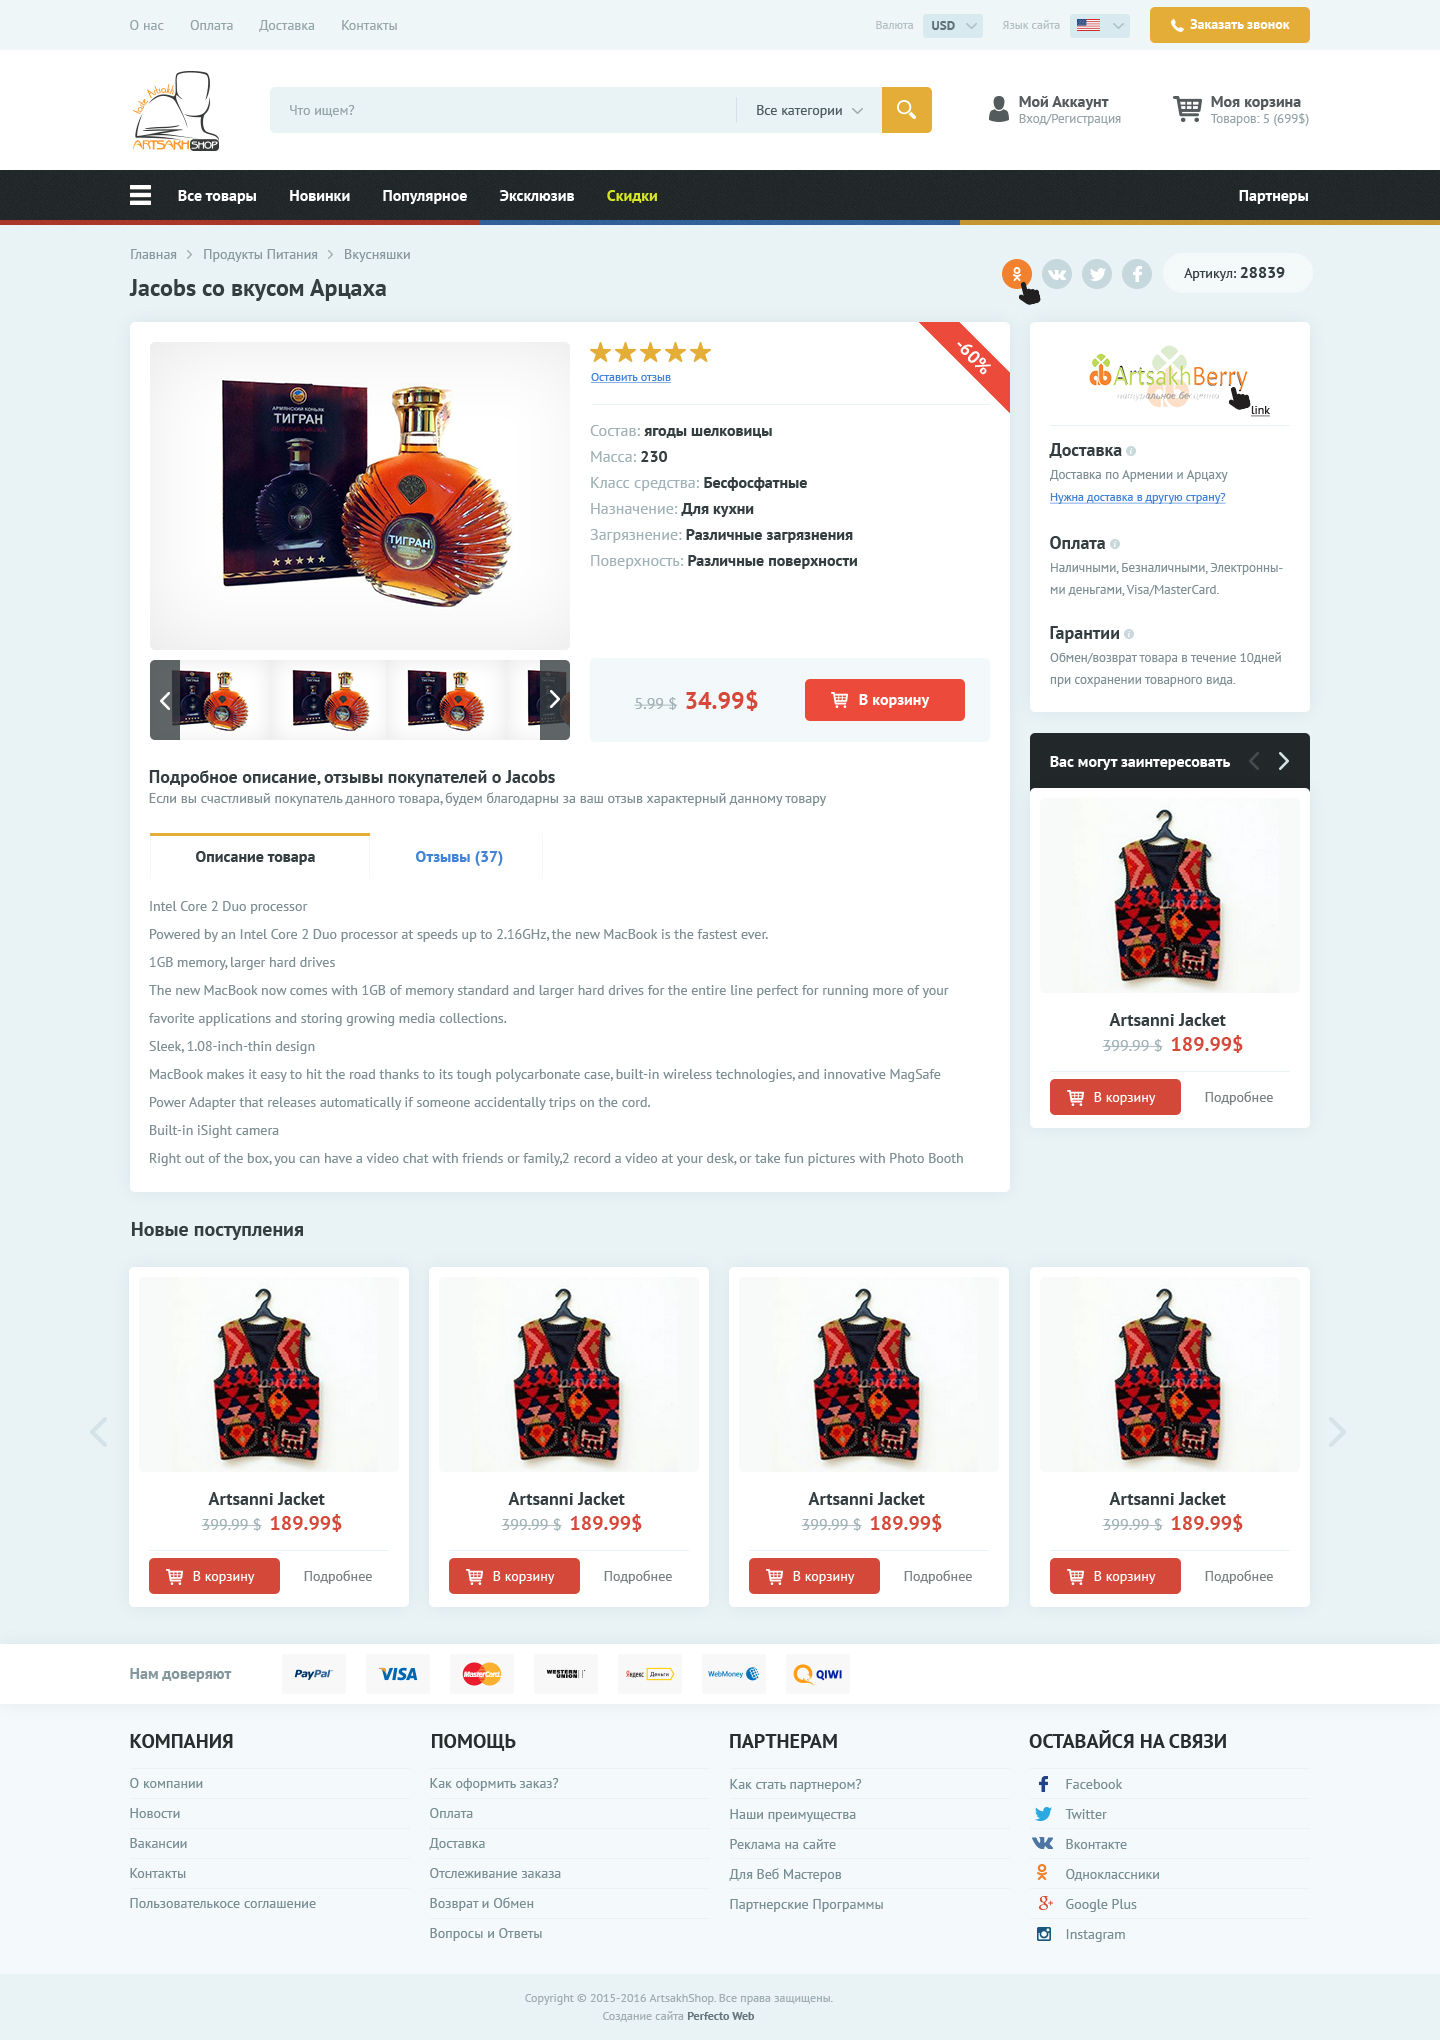 Artsakhshop - Product page